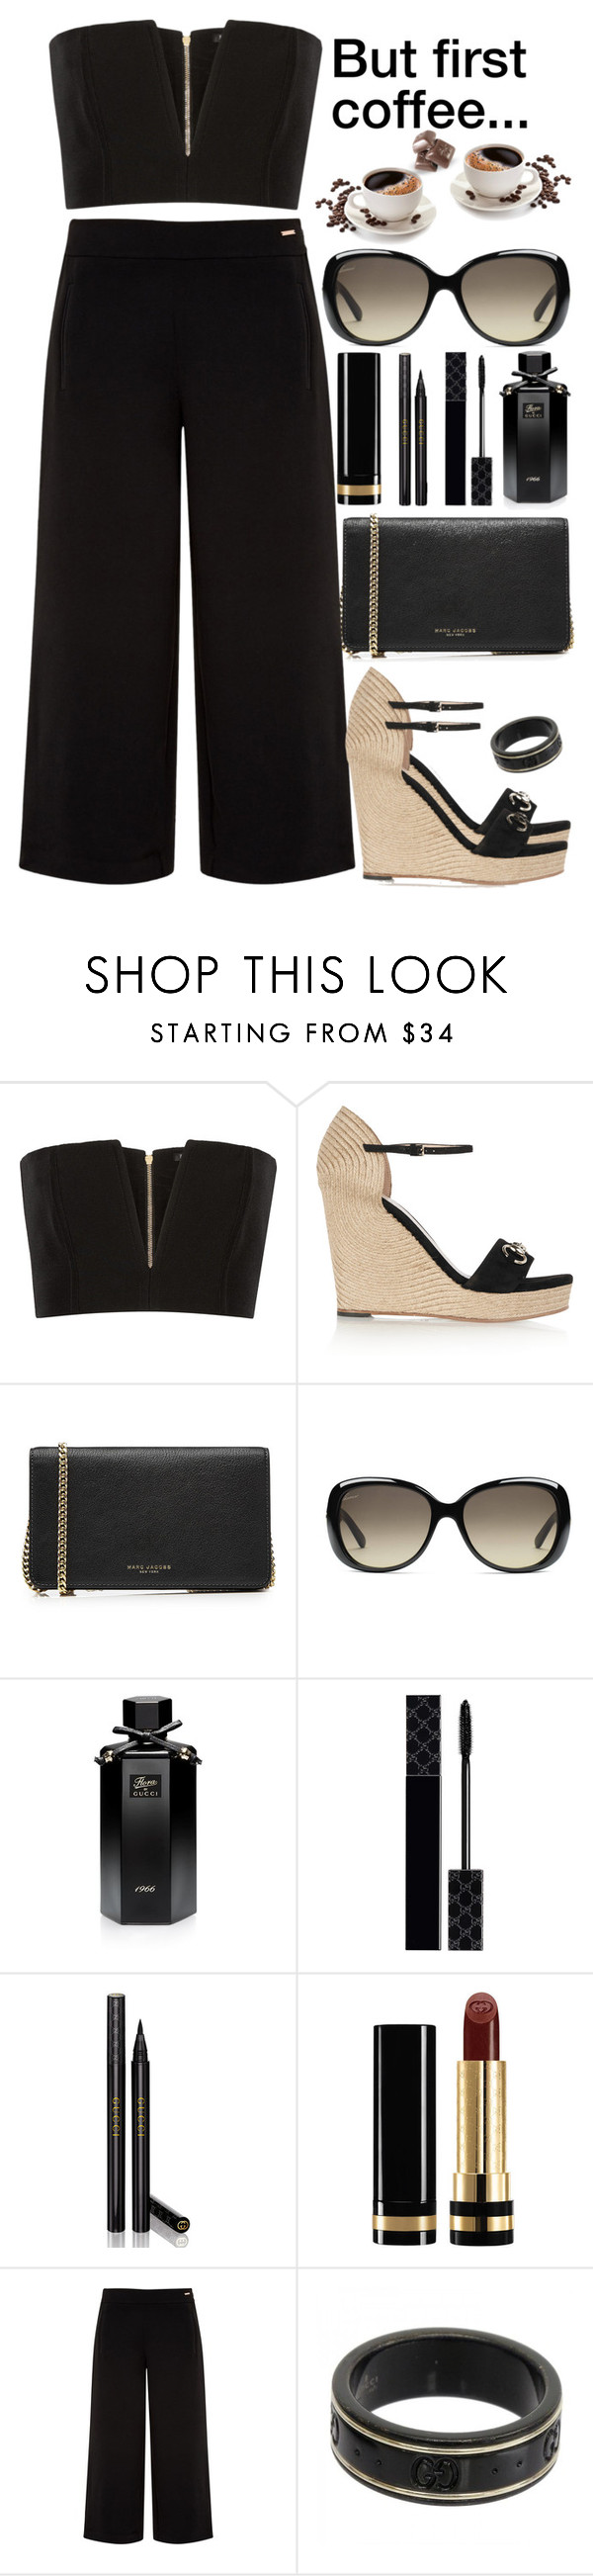 """But first coffee..."" by rasa-j ❤ liked on Polyvore featuring Balmain, Gucci, Marc Jacobs and Ted Baker"